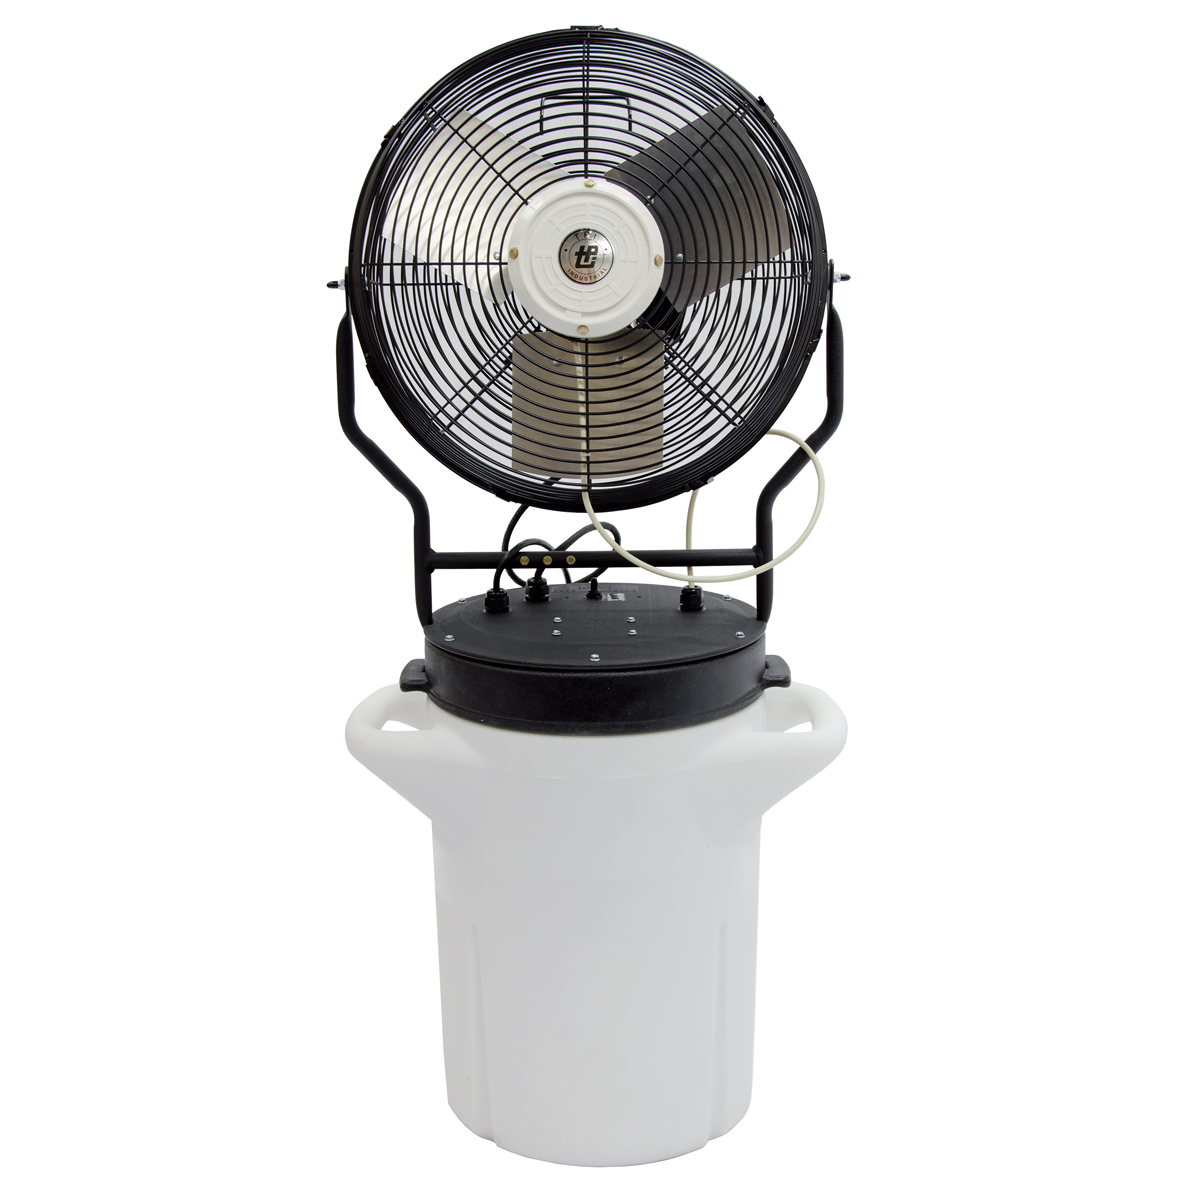 Portable Misting Fan image